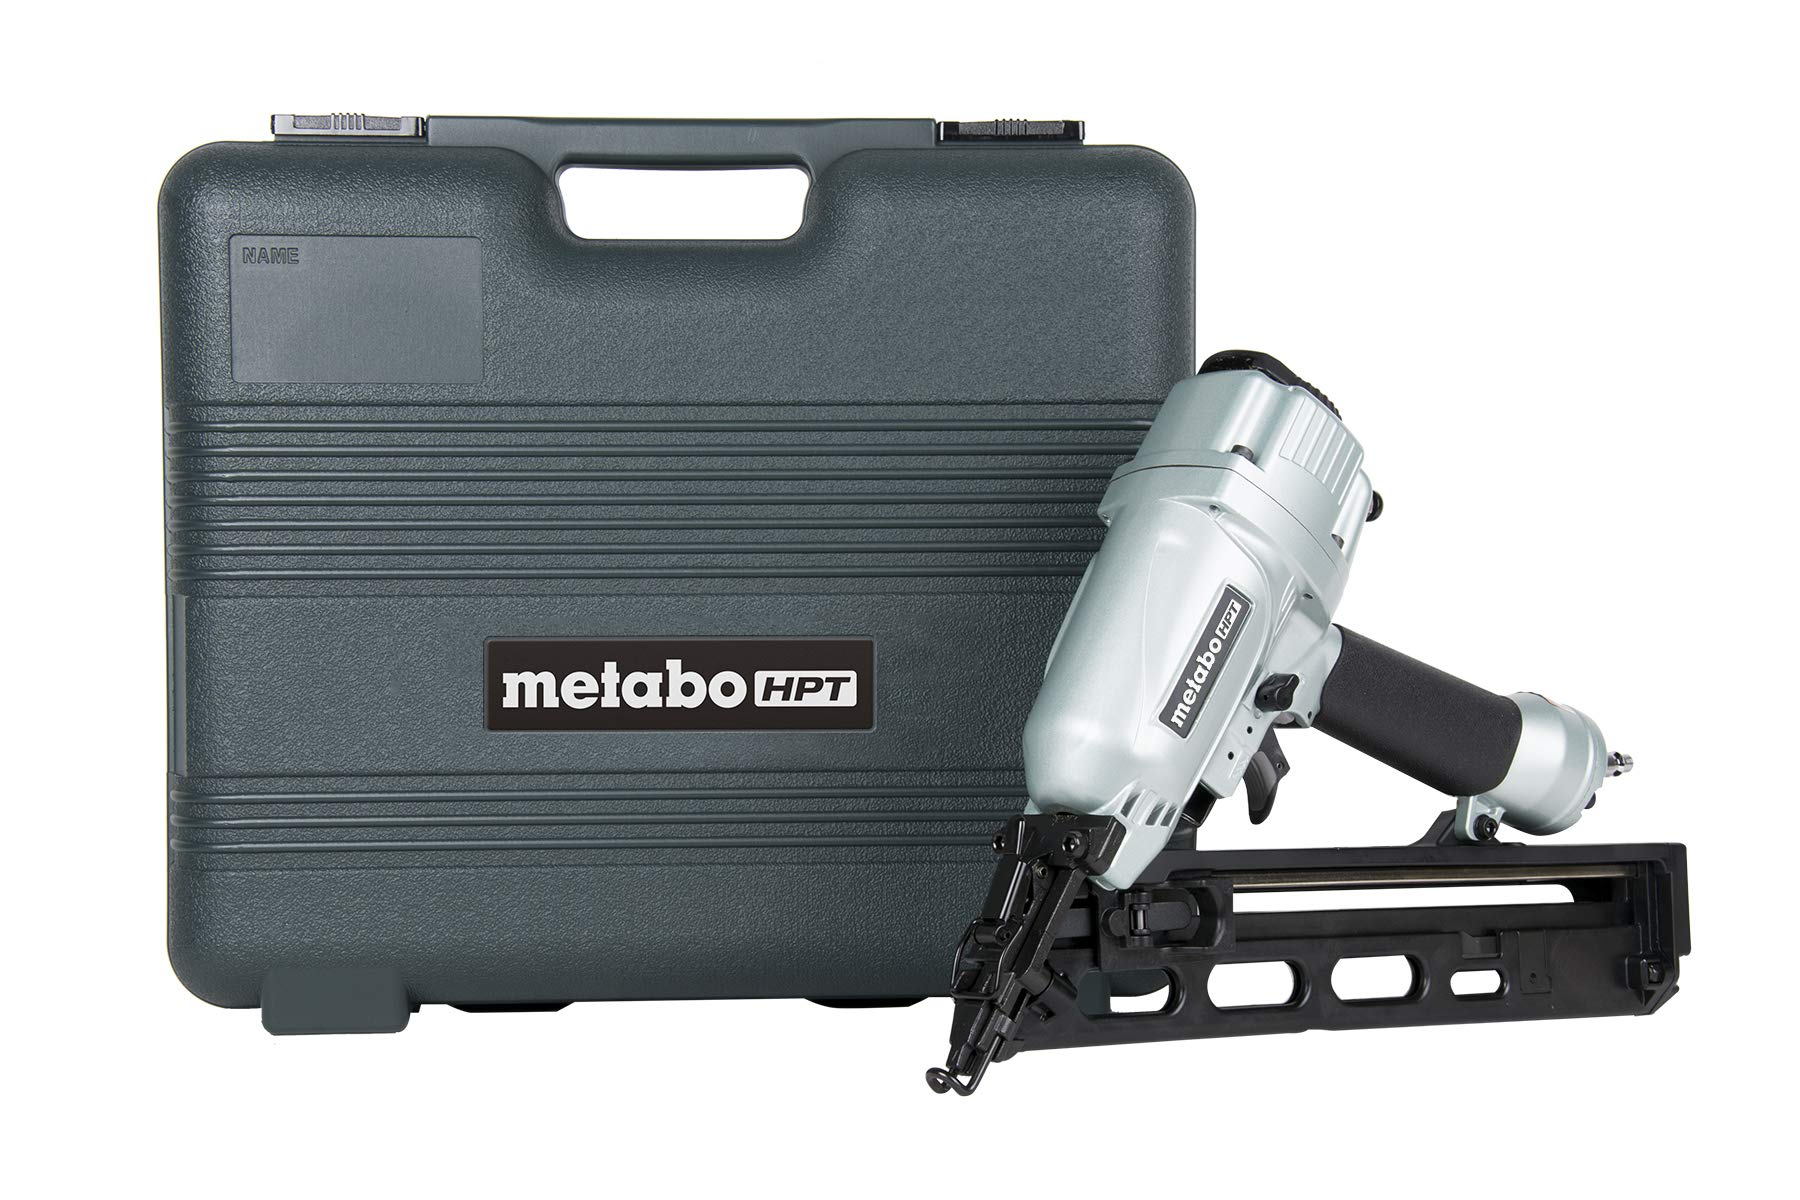 Clavadora Neumatica : Metabo HPT NT65MA4 Pneumatic Angled...